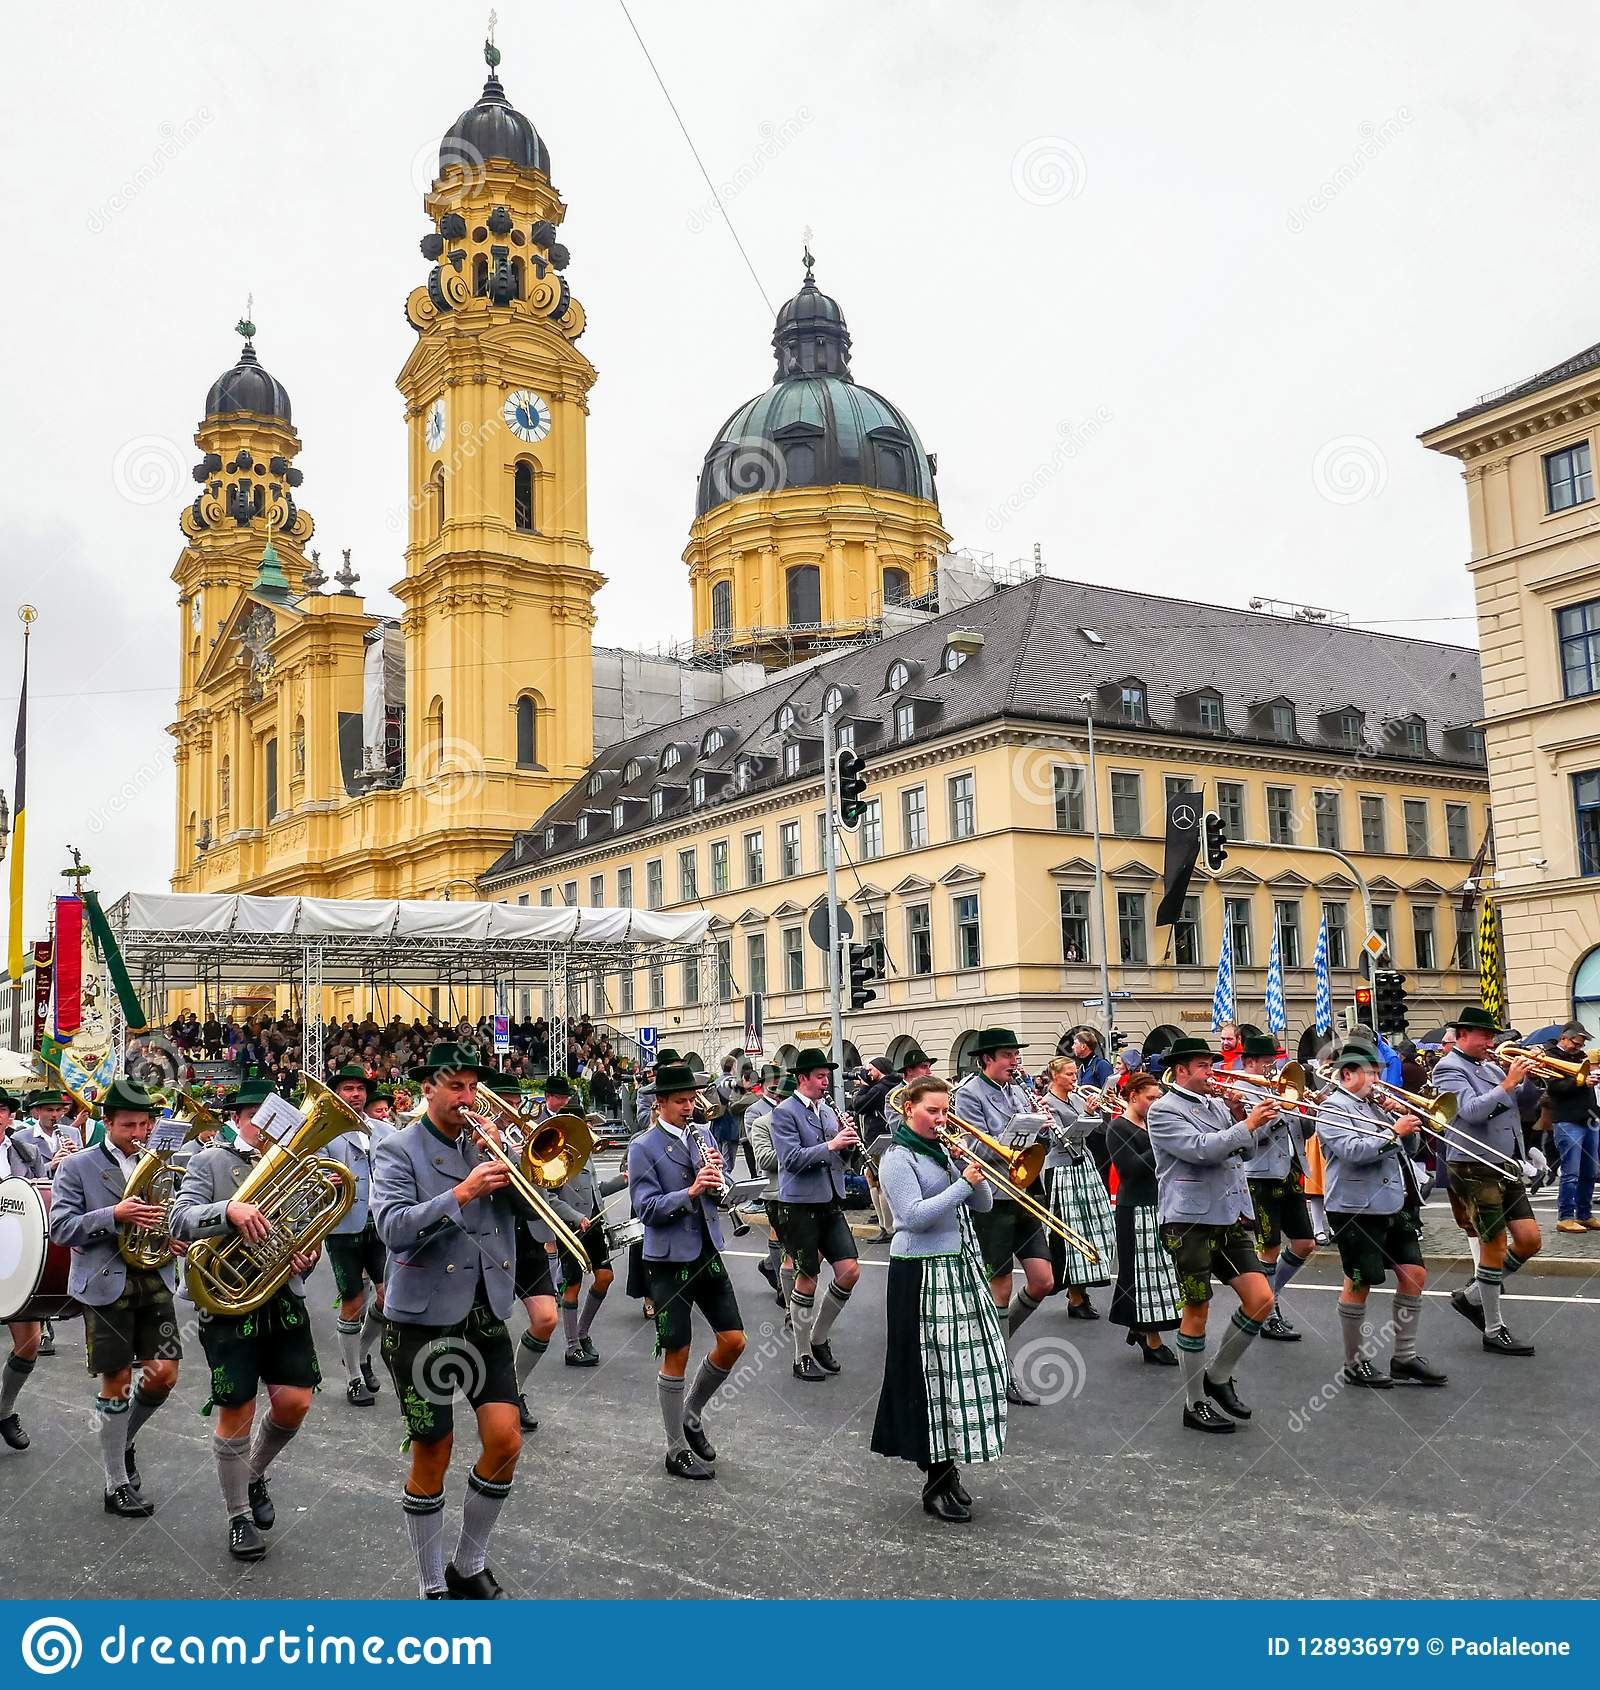 MUNICH, Germany - September 17, 2017: Octoberfest Opening Parade, with traditional Musicians and Cityscape